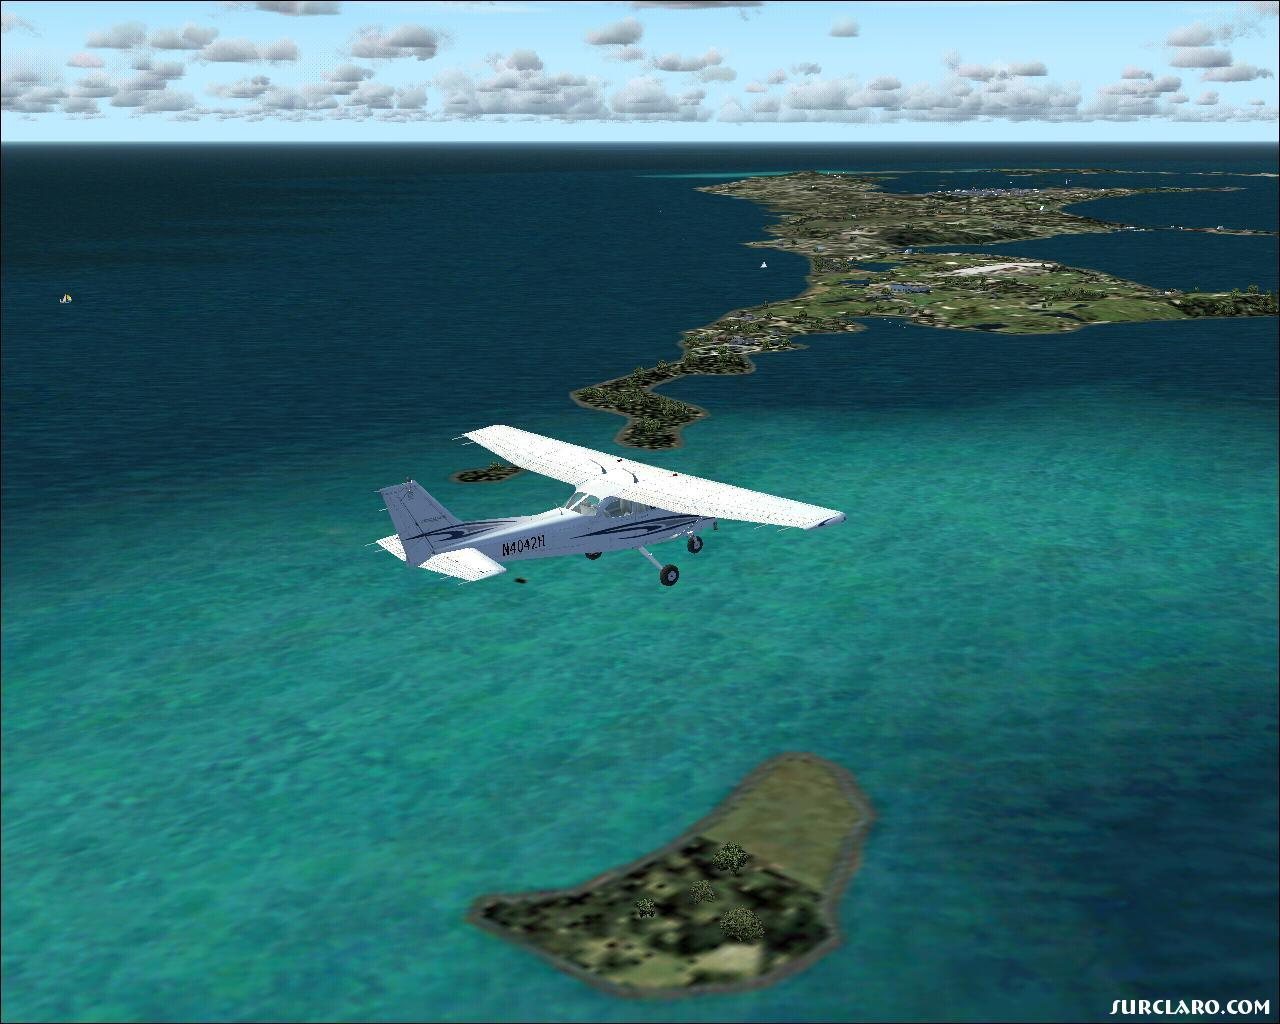 Flying around the Bermuda Islands. - Photo 11112